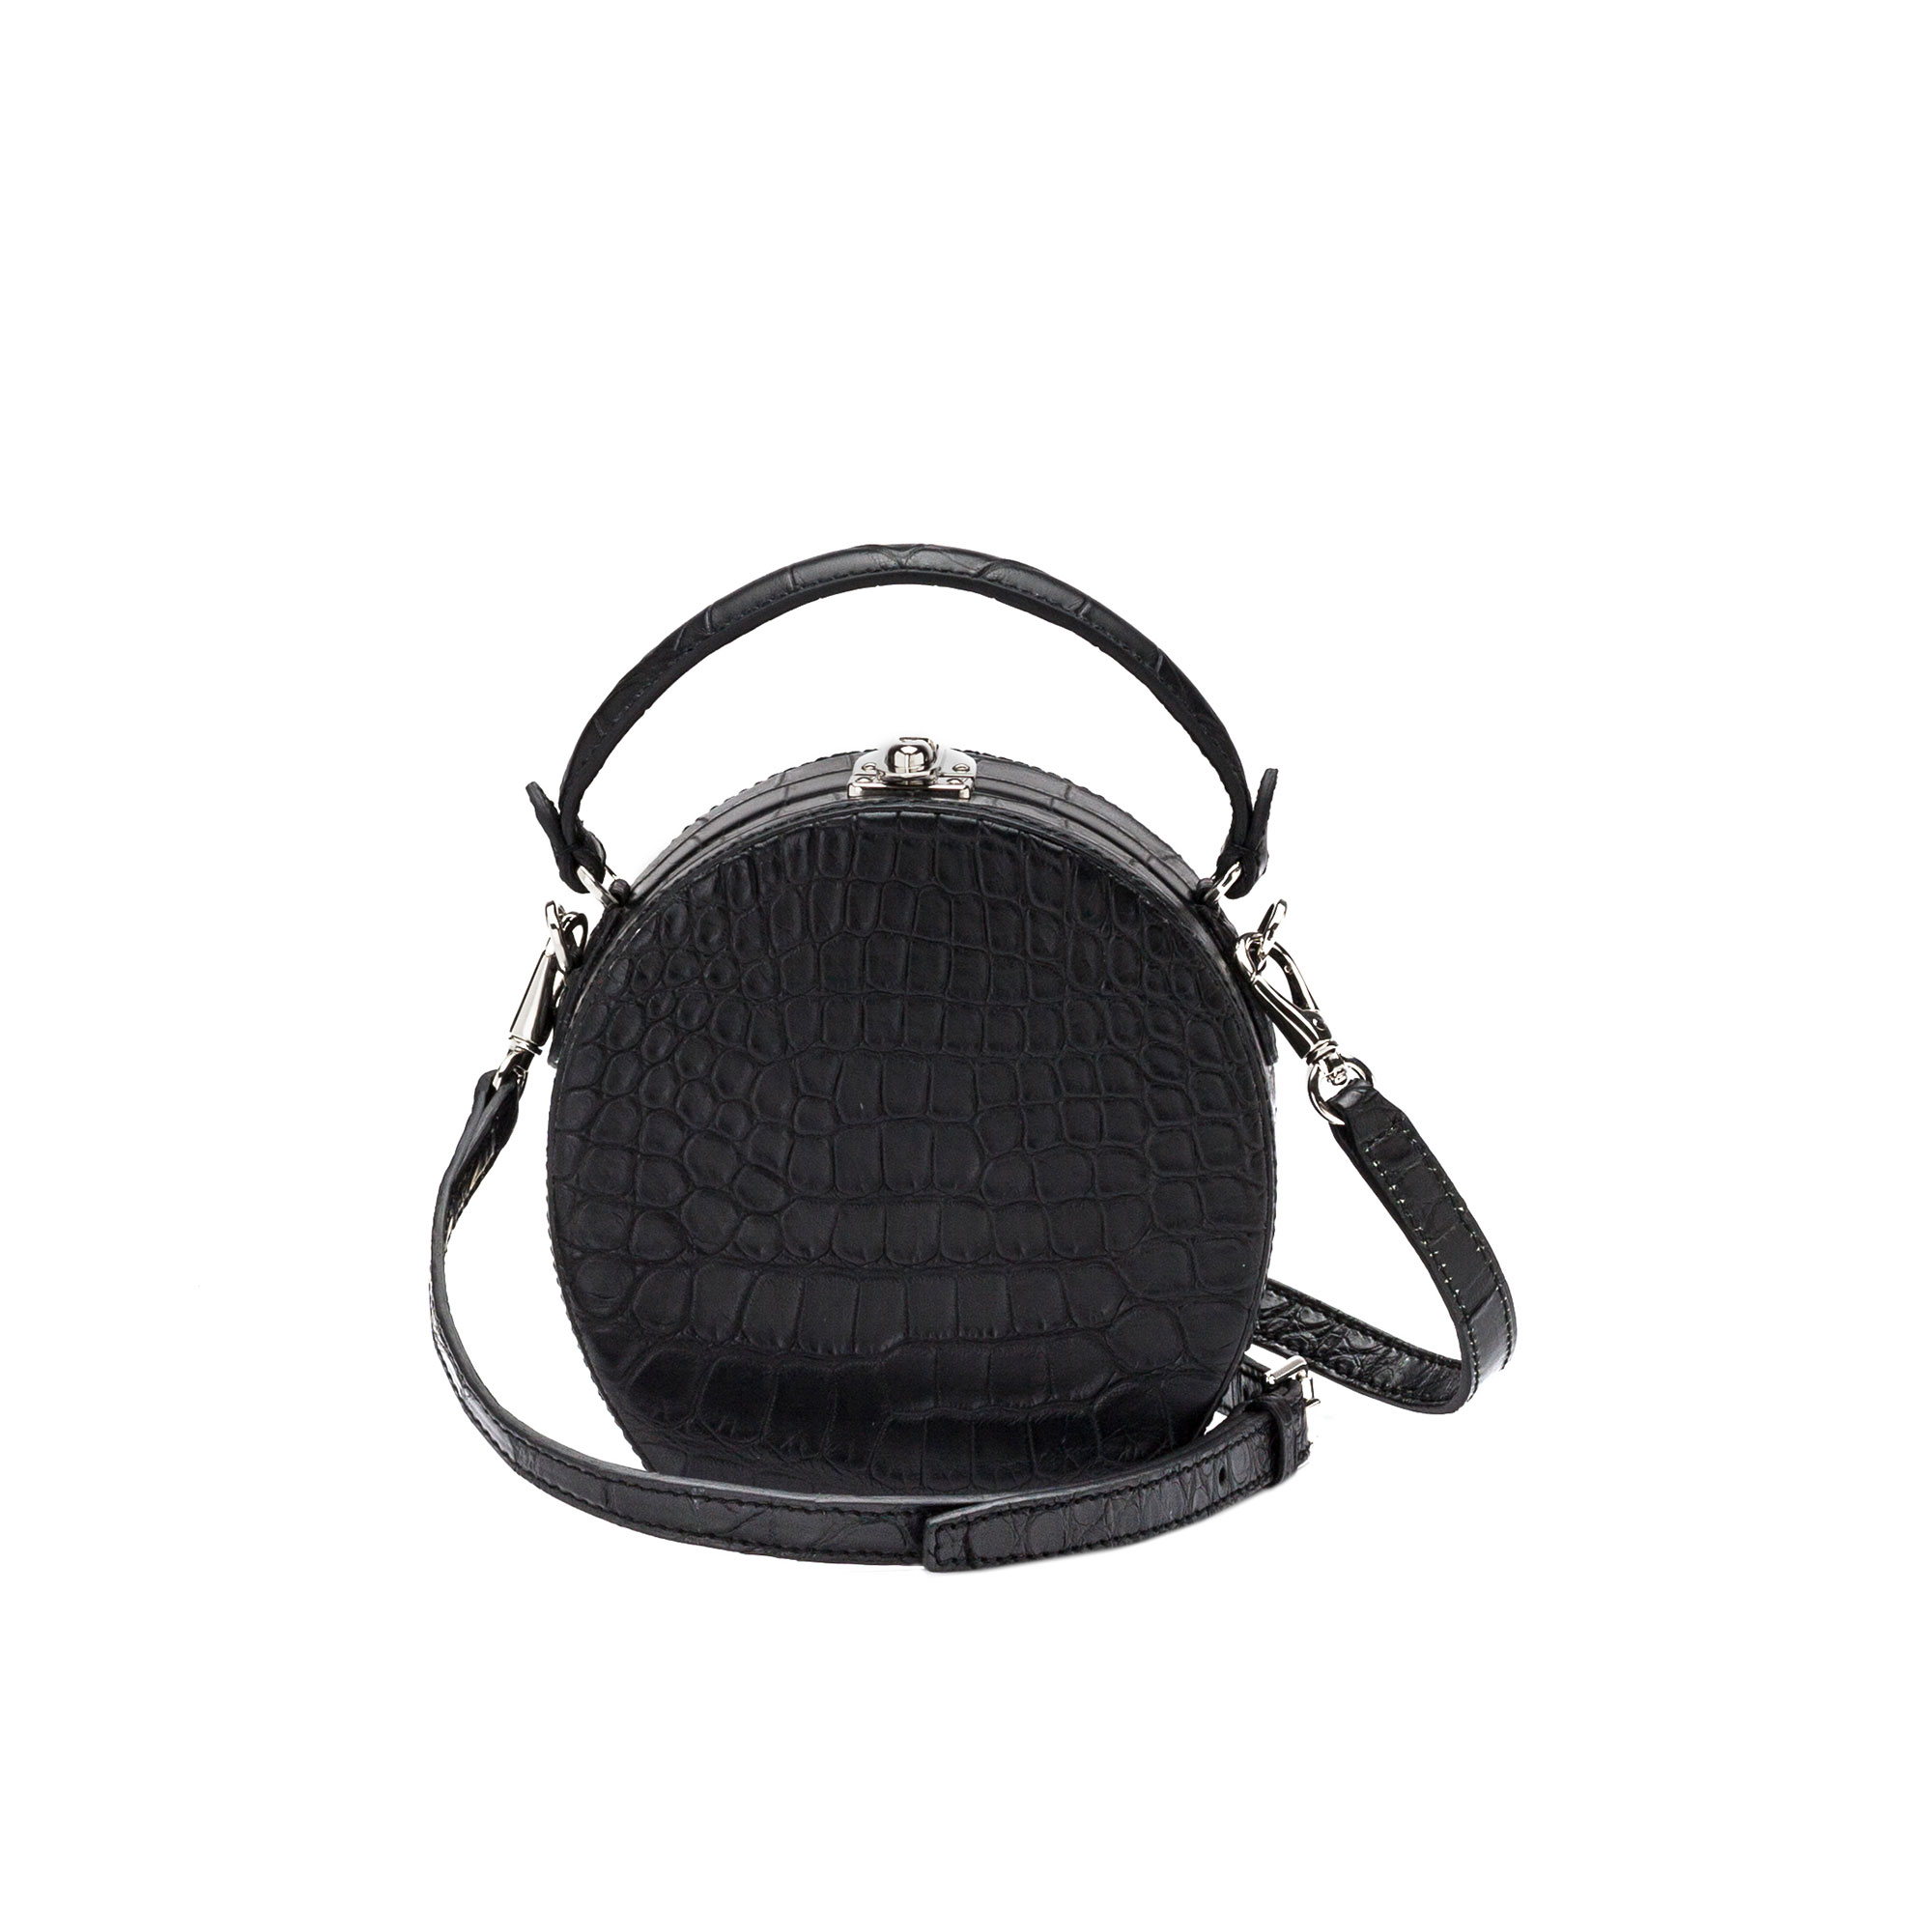 The black alligator Regular Bertoncina bag by Bertoni 1949 03